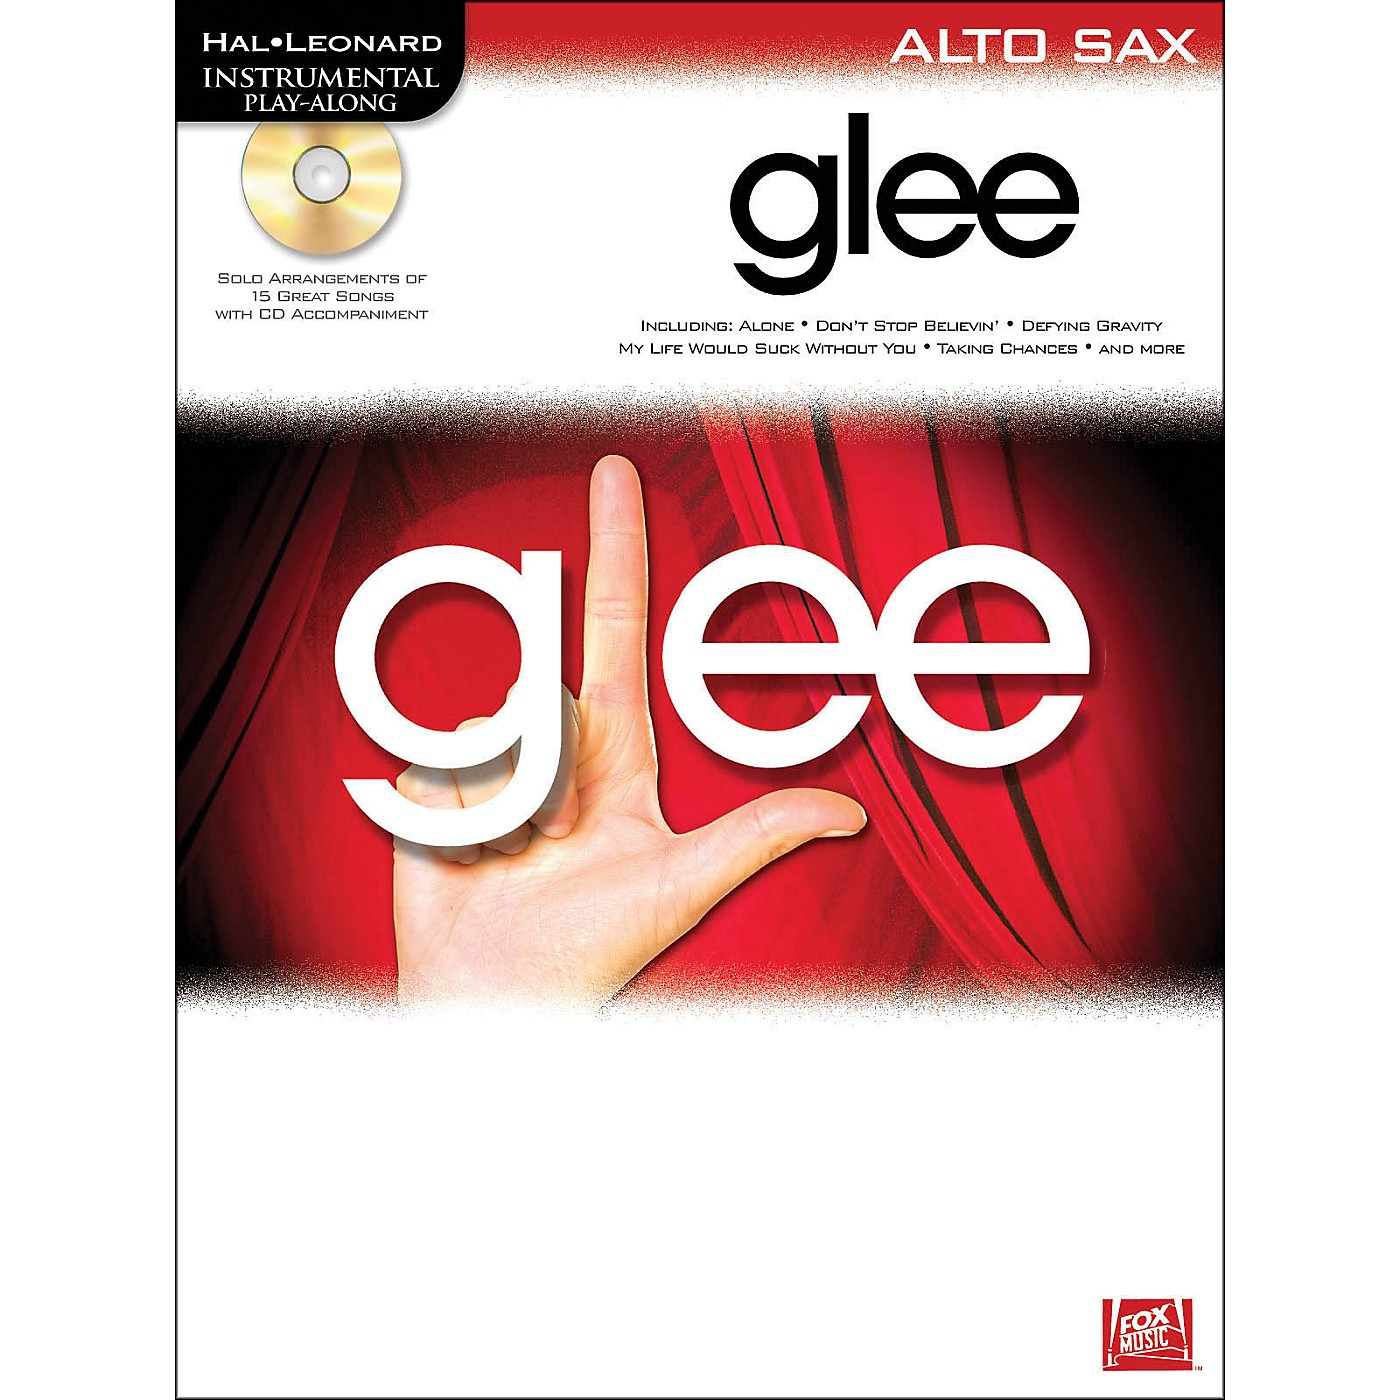 Hal Leonard Glee For Alto Sax - Instrumental Play-Along Book/CD thumbnail